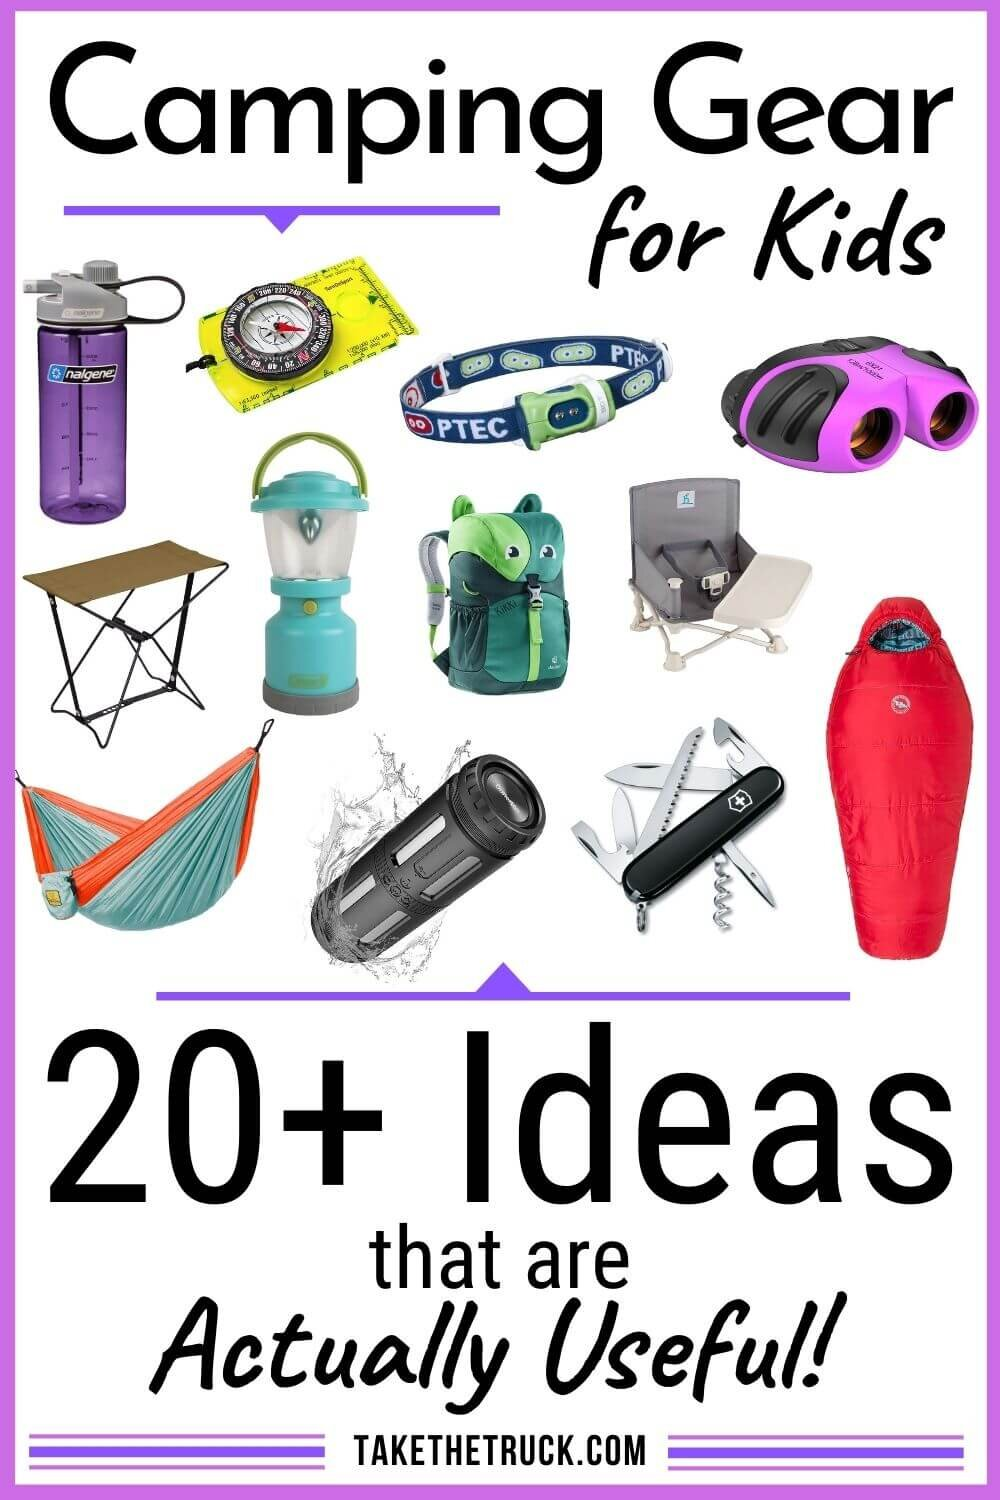 Looking for the best kids' camping gear to buy for the children in your life? Check out over 20 useful camping gear ideas that make great outdoor gear gifts for kids, from babies up to teens.